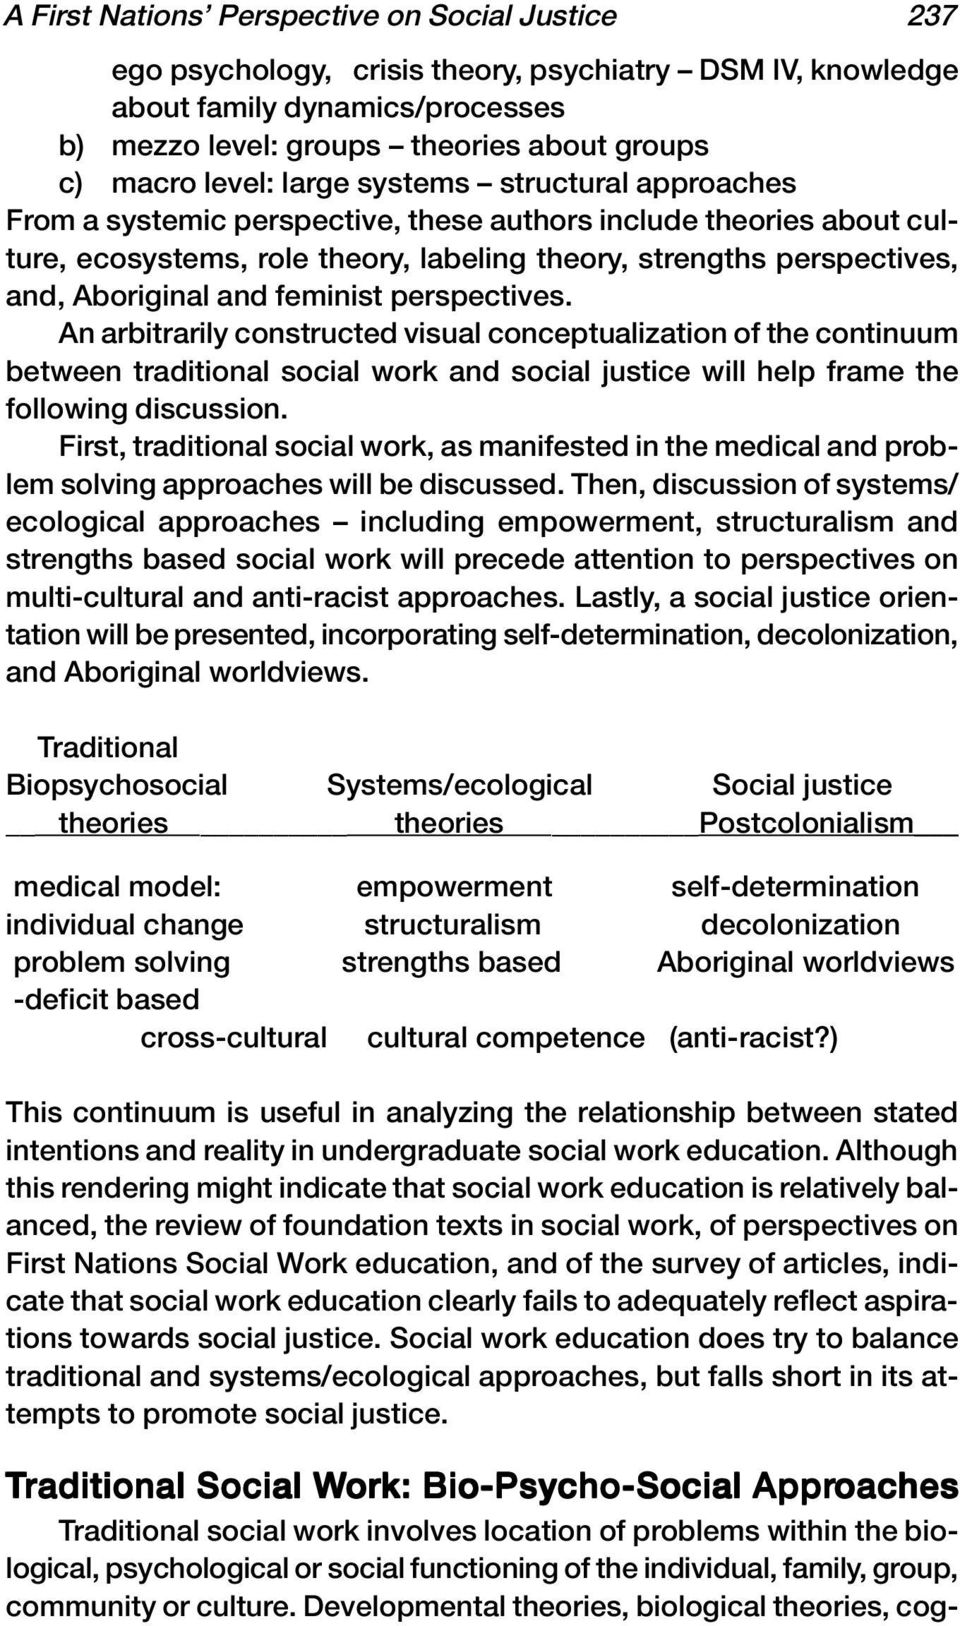 and feminist perspectives. An arbitrarily constructed visual conceptualization of the continuum between traditional social work and social justice will help frame the following discussion.